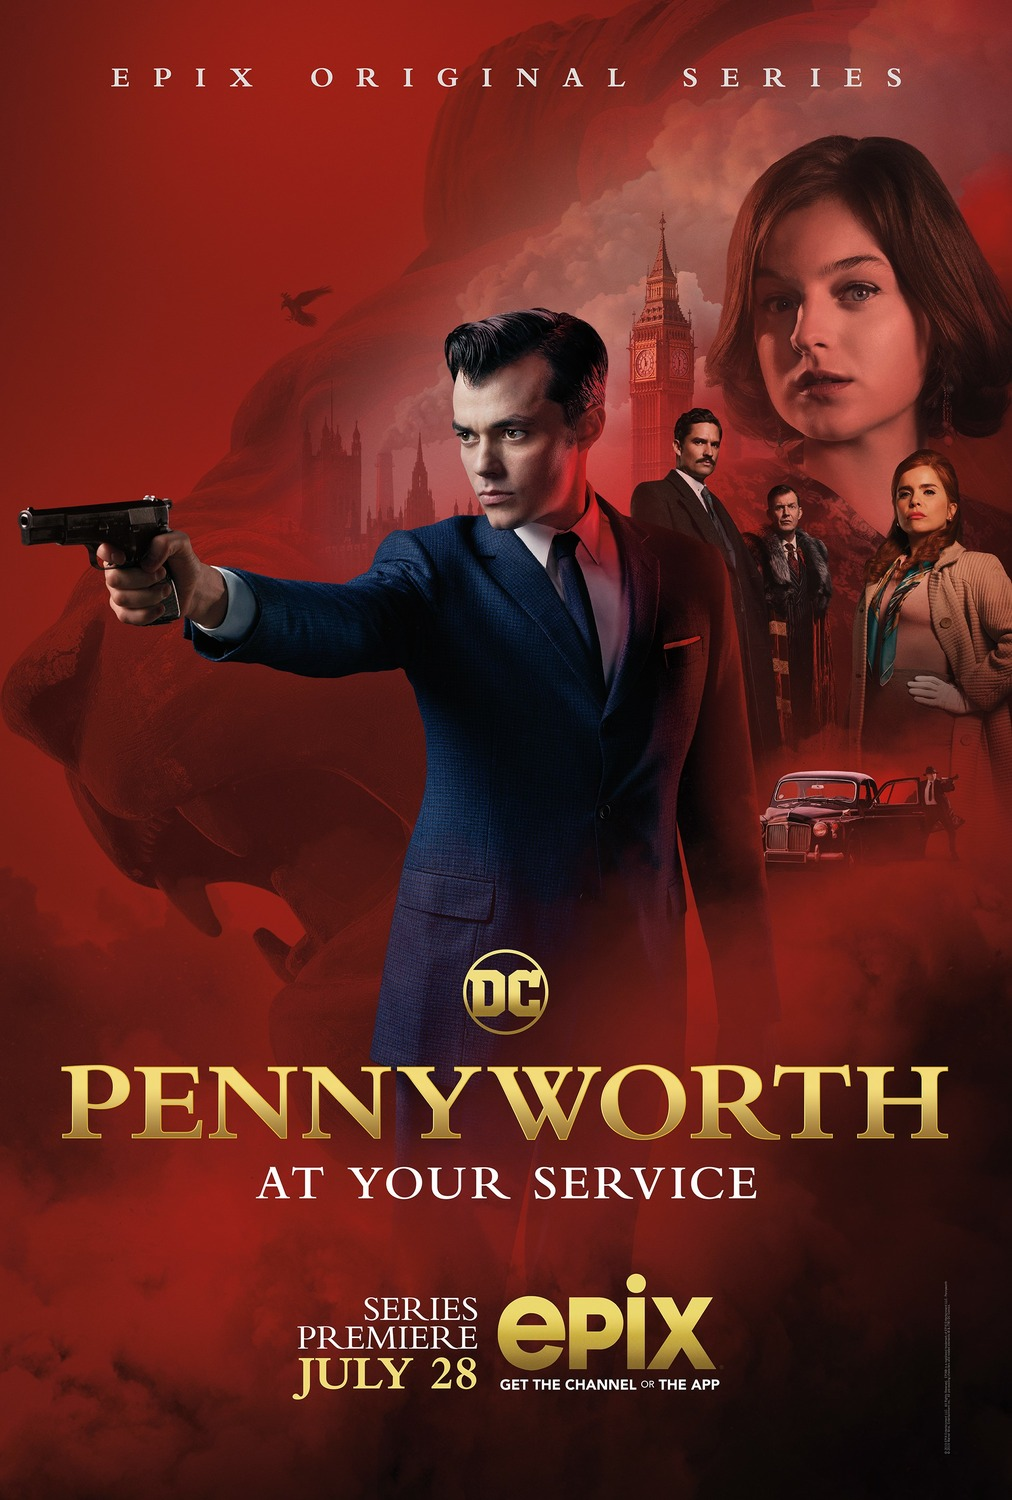 Extra Large Movie Poster Image for Pennyworth